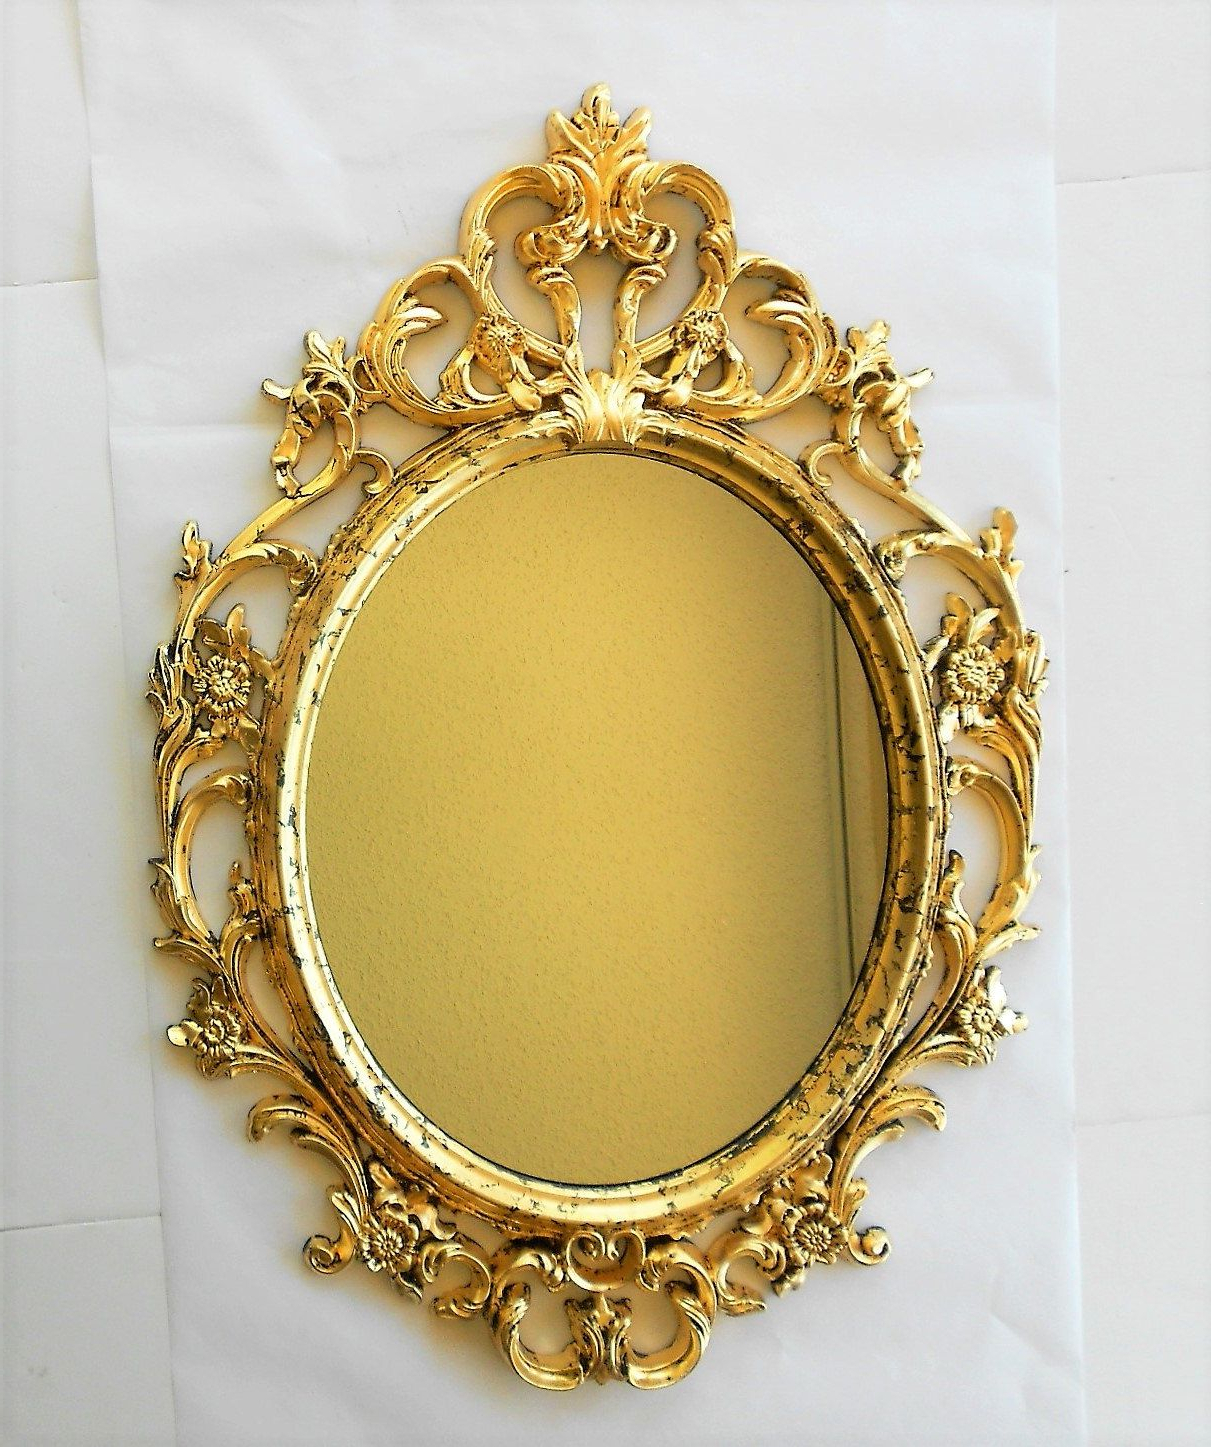 "33.5"" H, Mirror Gold, Gold Frame, Oval Mirror, Large Oval Pertaining To Most Up To Date Large Oval Wall Mirrors (Gallery 4 of 20)"